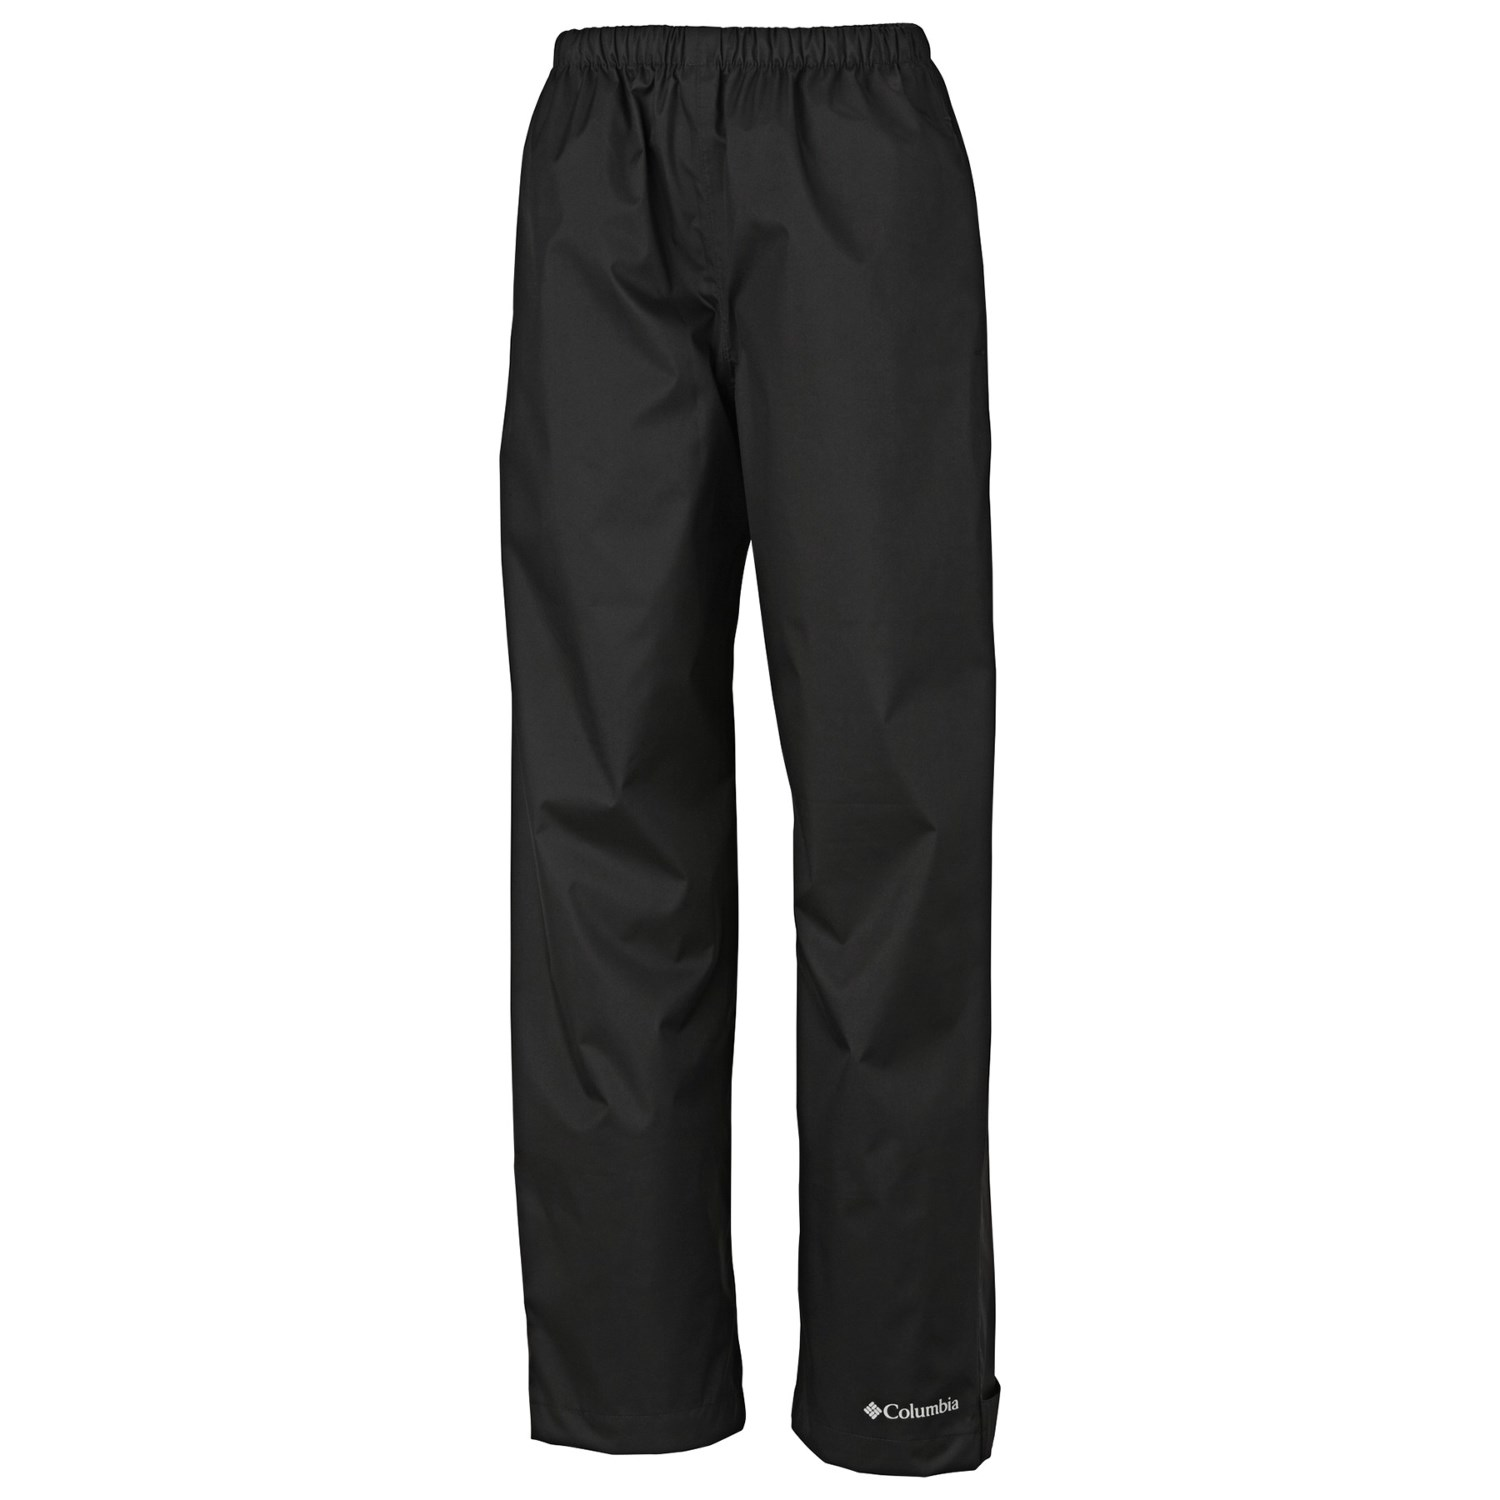 Boys & Girls Waterproof Pants Read More Make sure they are prepared for all weathers when enjoying the great outdoors with a pair of kids waterproof newbez.ml pakka waterproof overtrousers for girls and boys are ideal 'just in case' waterproofs for outdoor activities and camping.